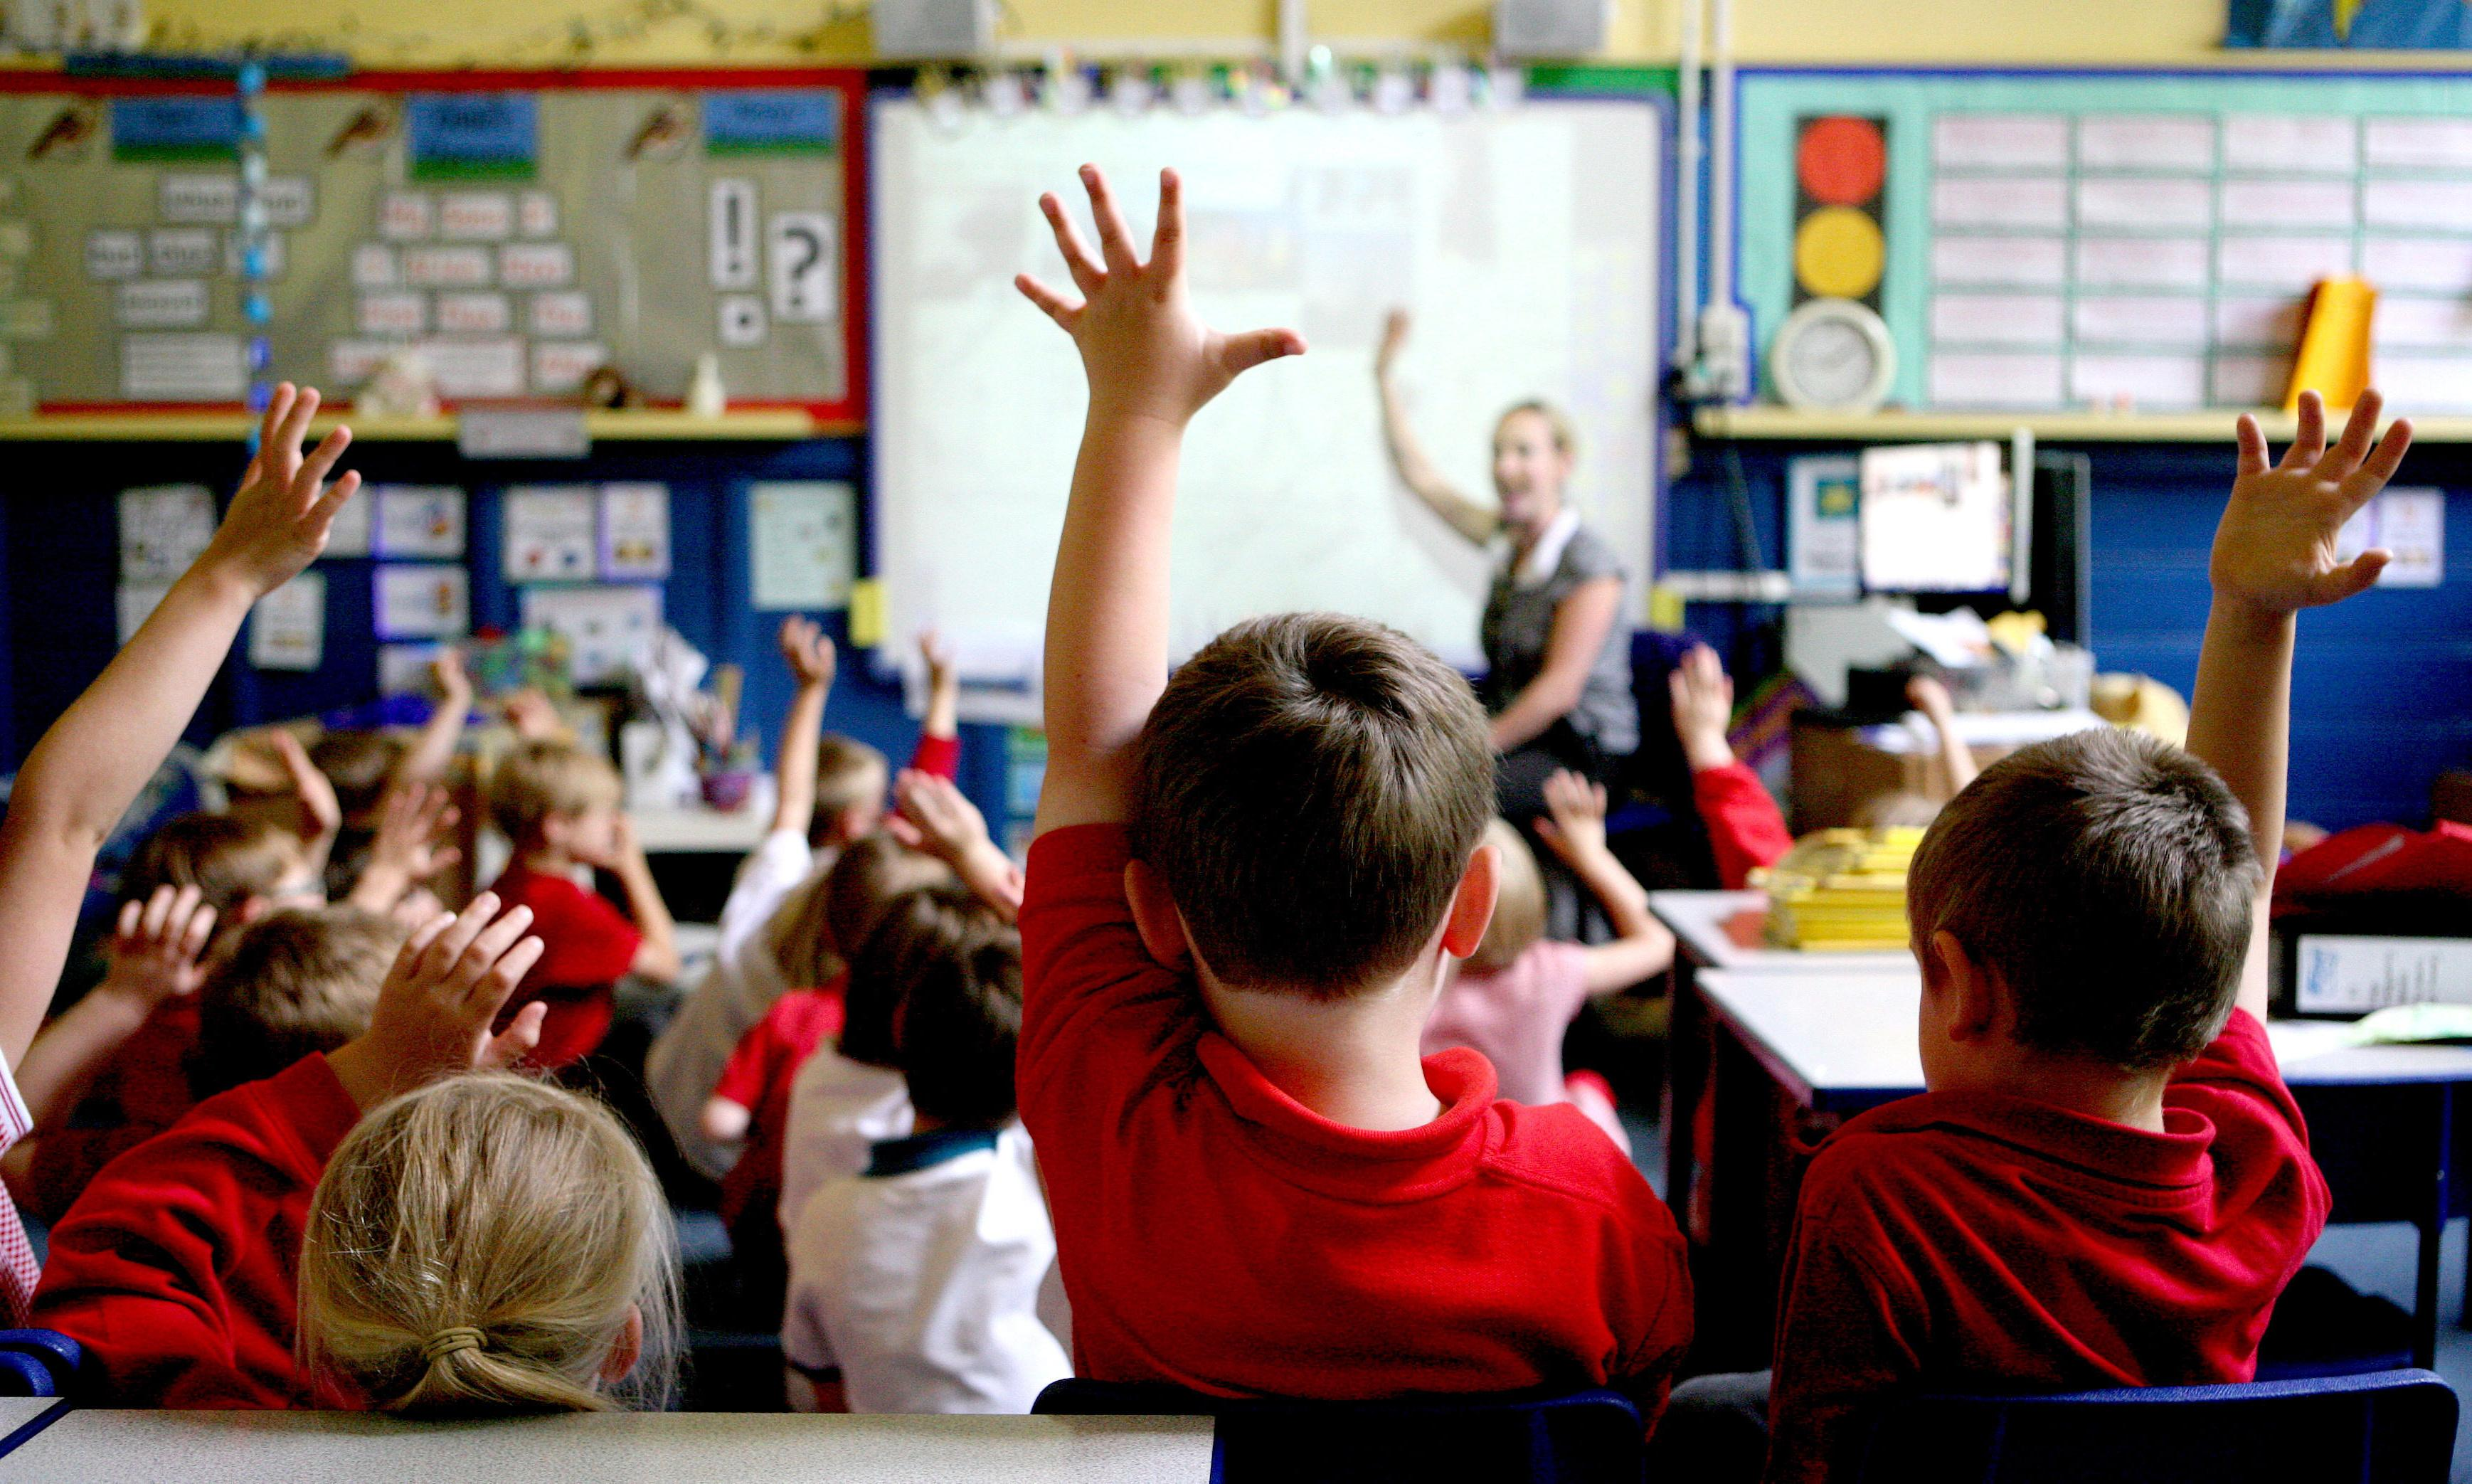 Child poverty is destroying the myth that Britain is a meritocracy